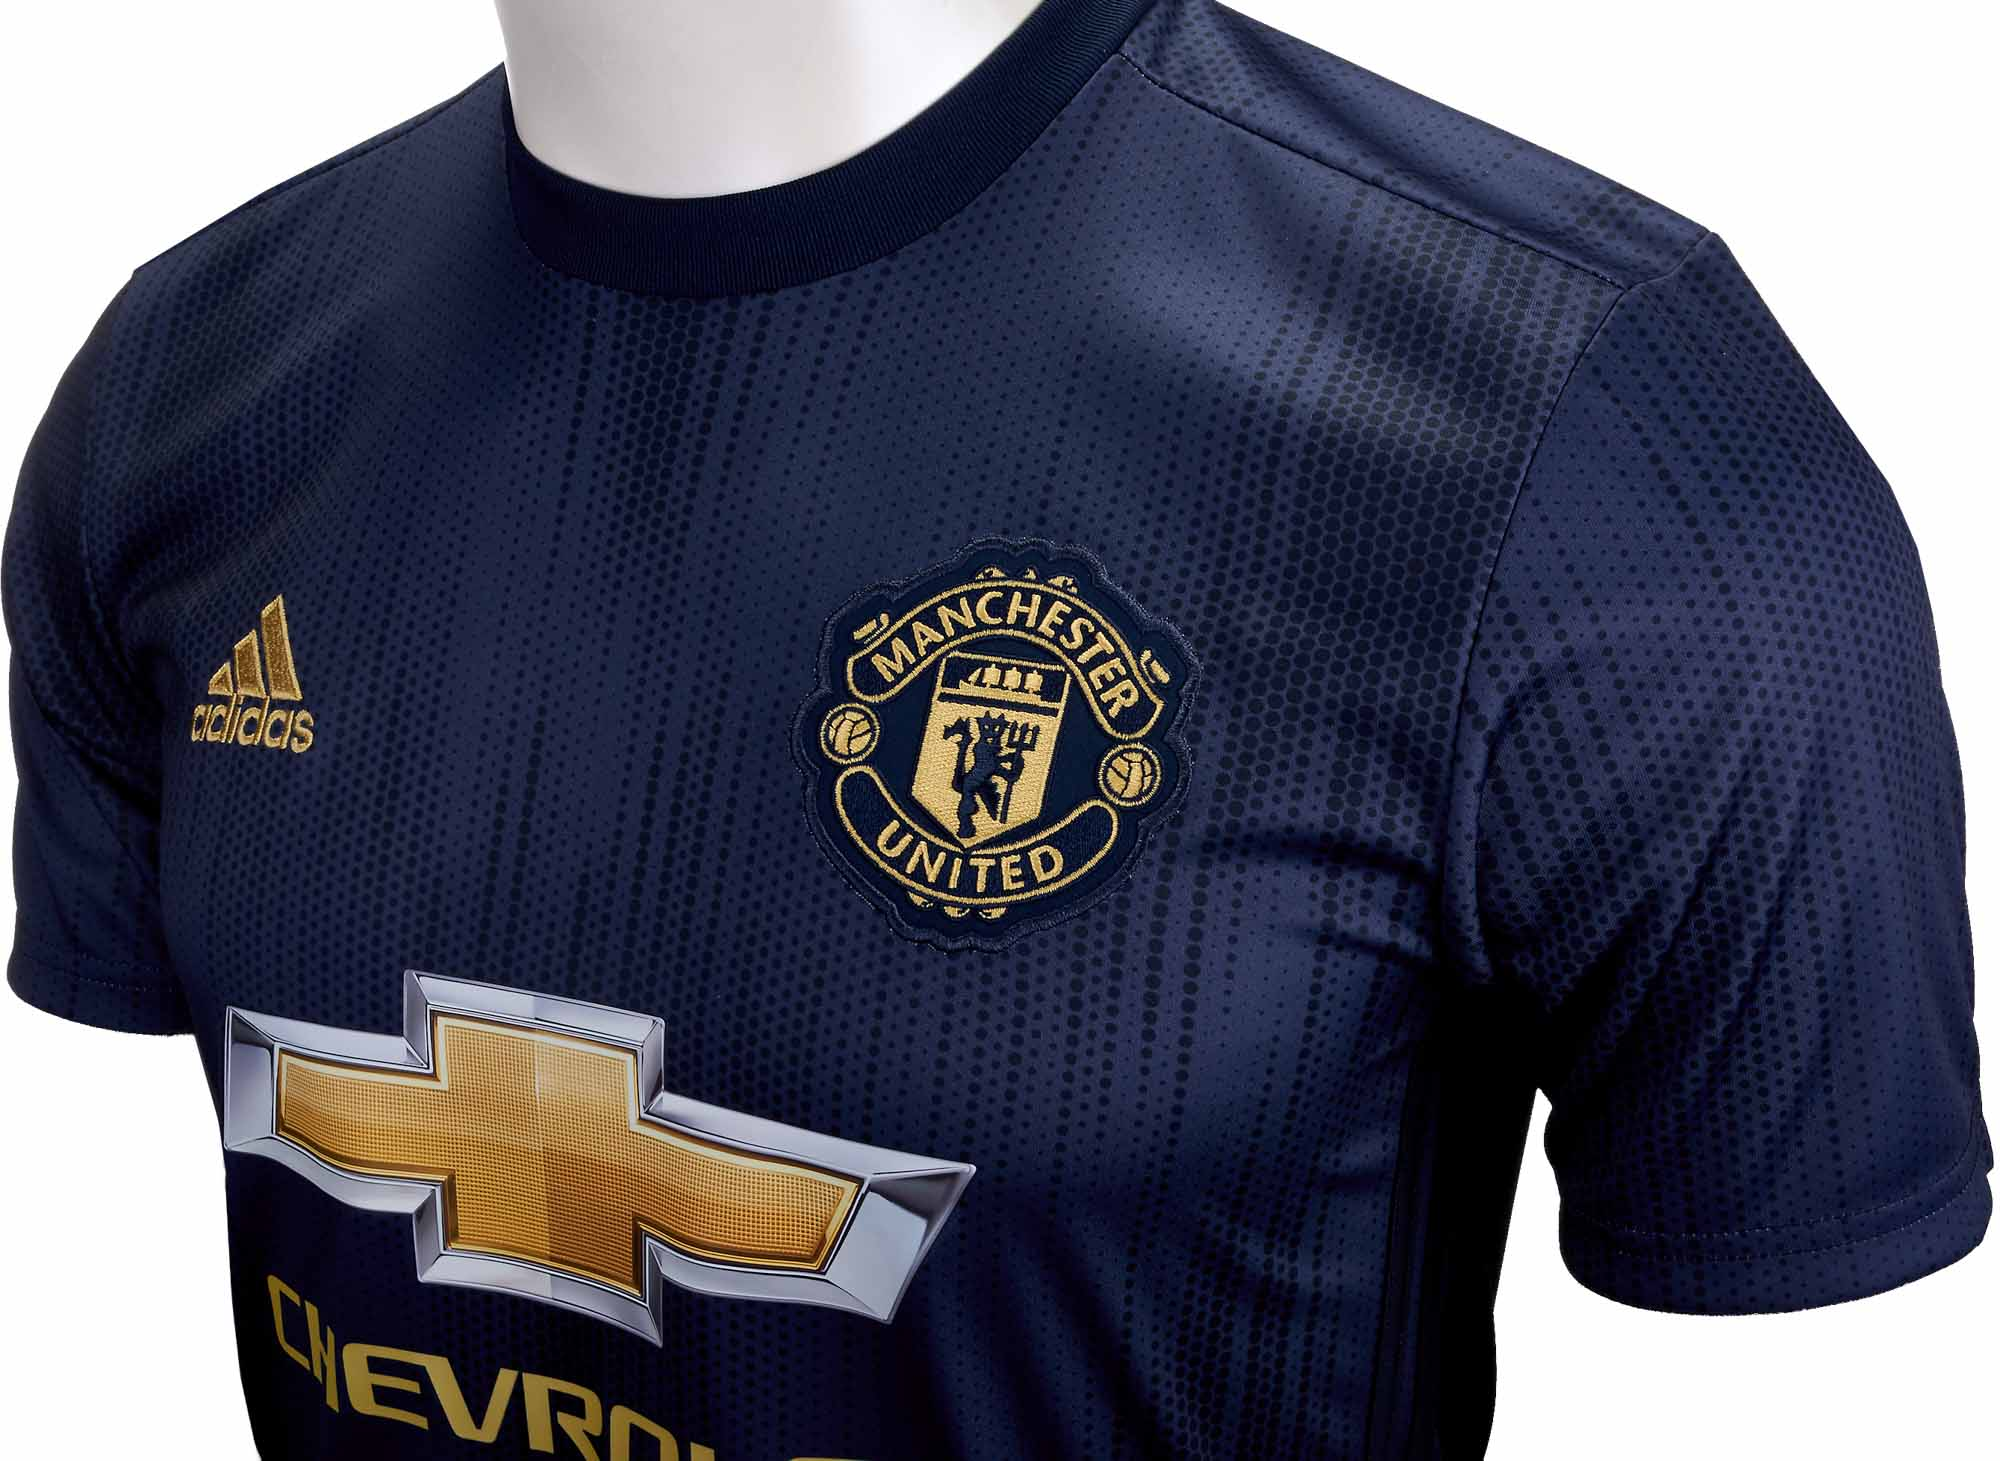 half off 637b4 e0b5b 2018/19 adidas Manchester United 3rd Jersey - Soccer Master